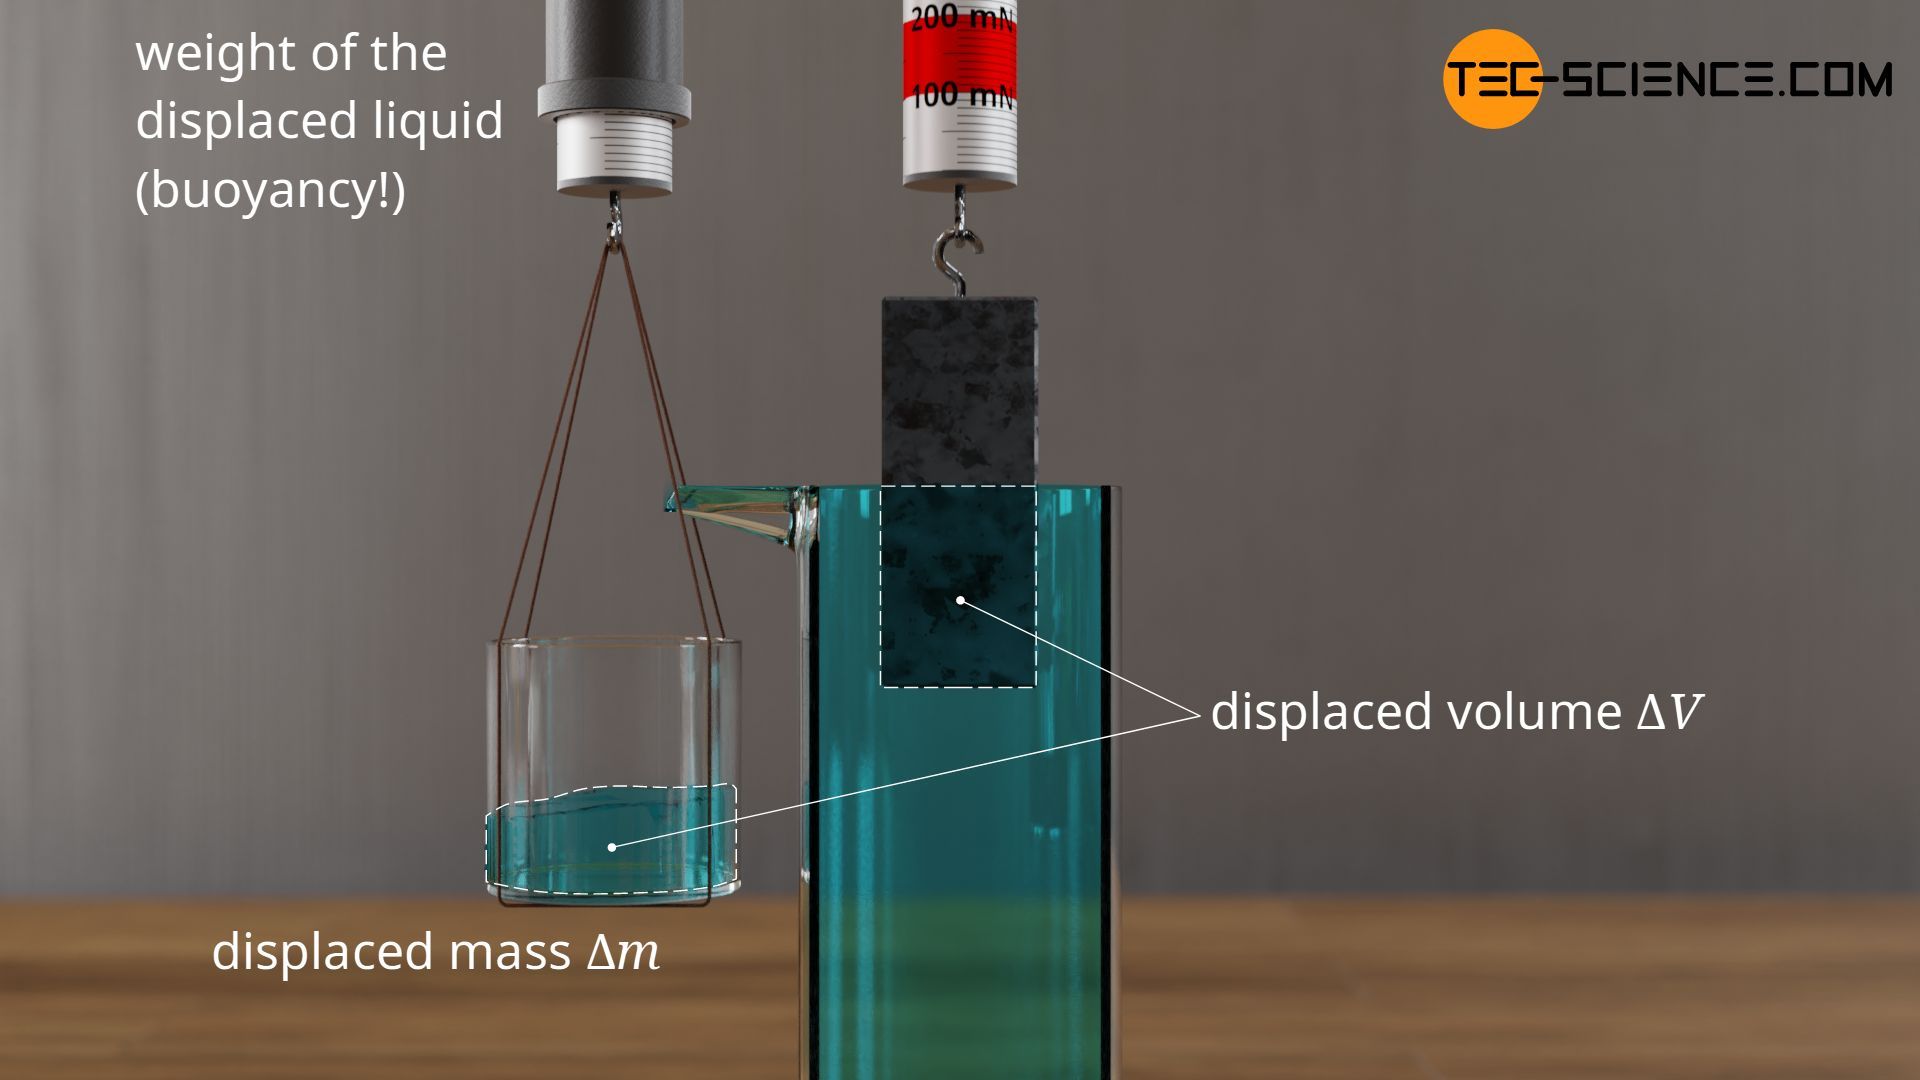 Displaced volume of liquid when immersing a body in a liquid